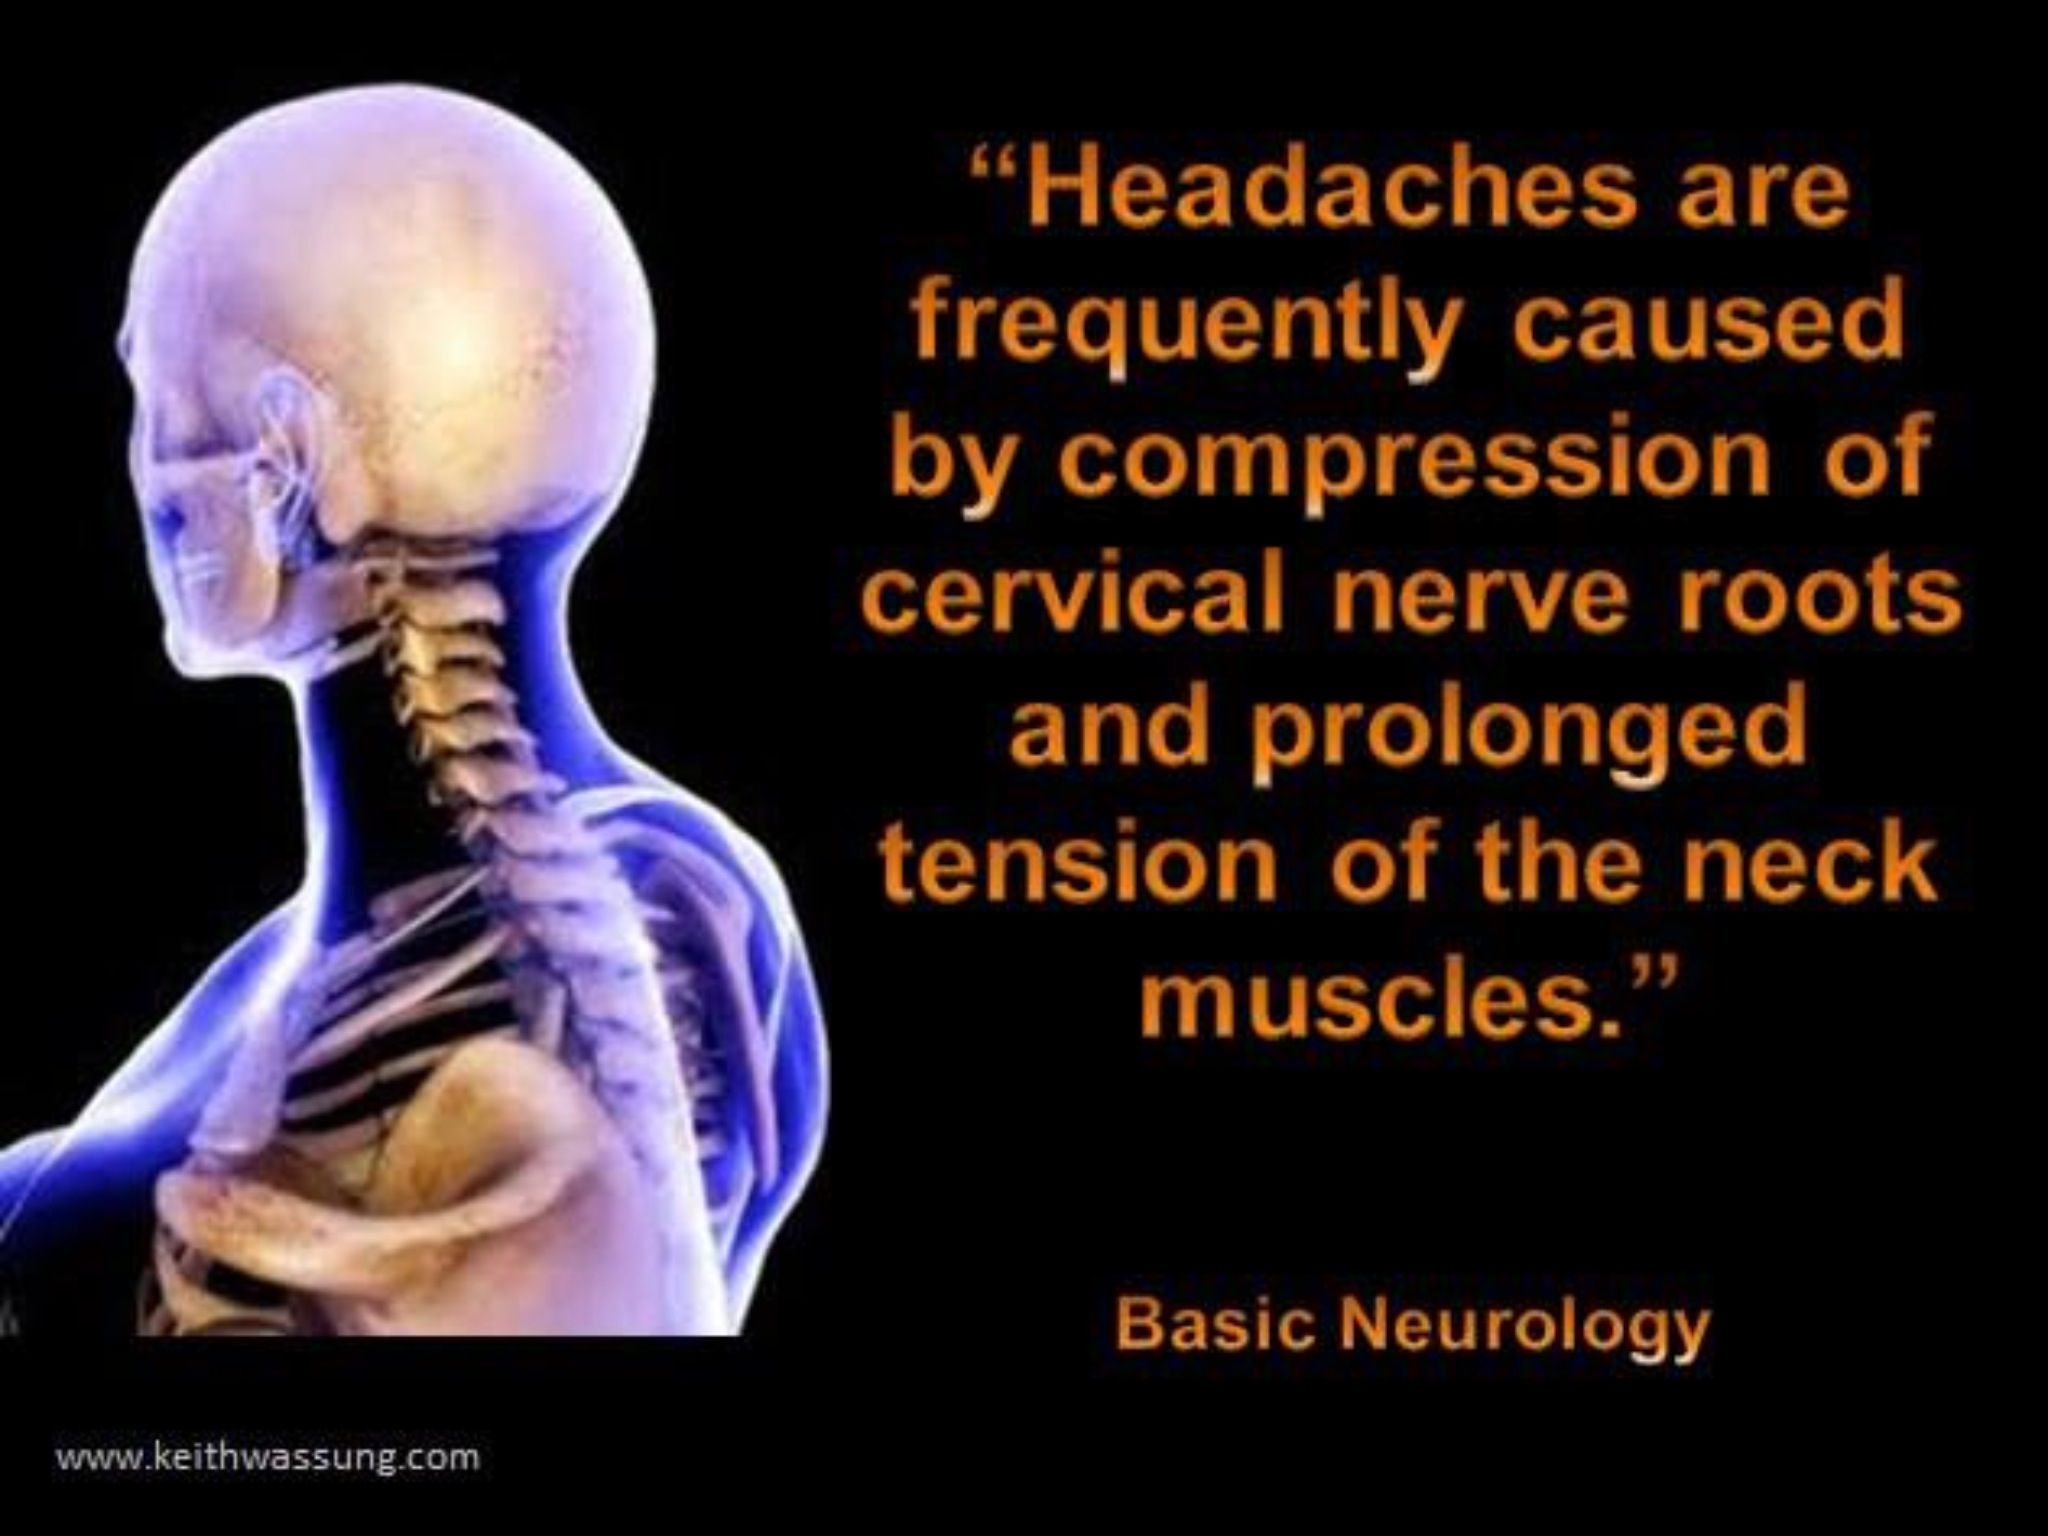 Chiropractic Health Wellness Headaches Nerves Adjustments Chiropractic Care Chiropractic Chiropractic Adjustment